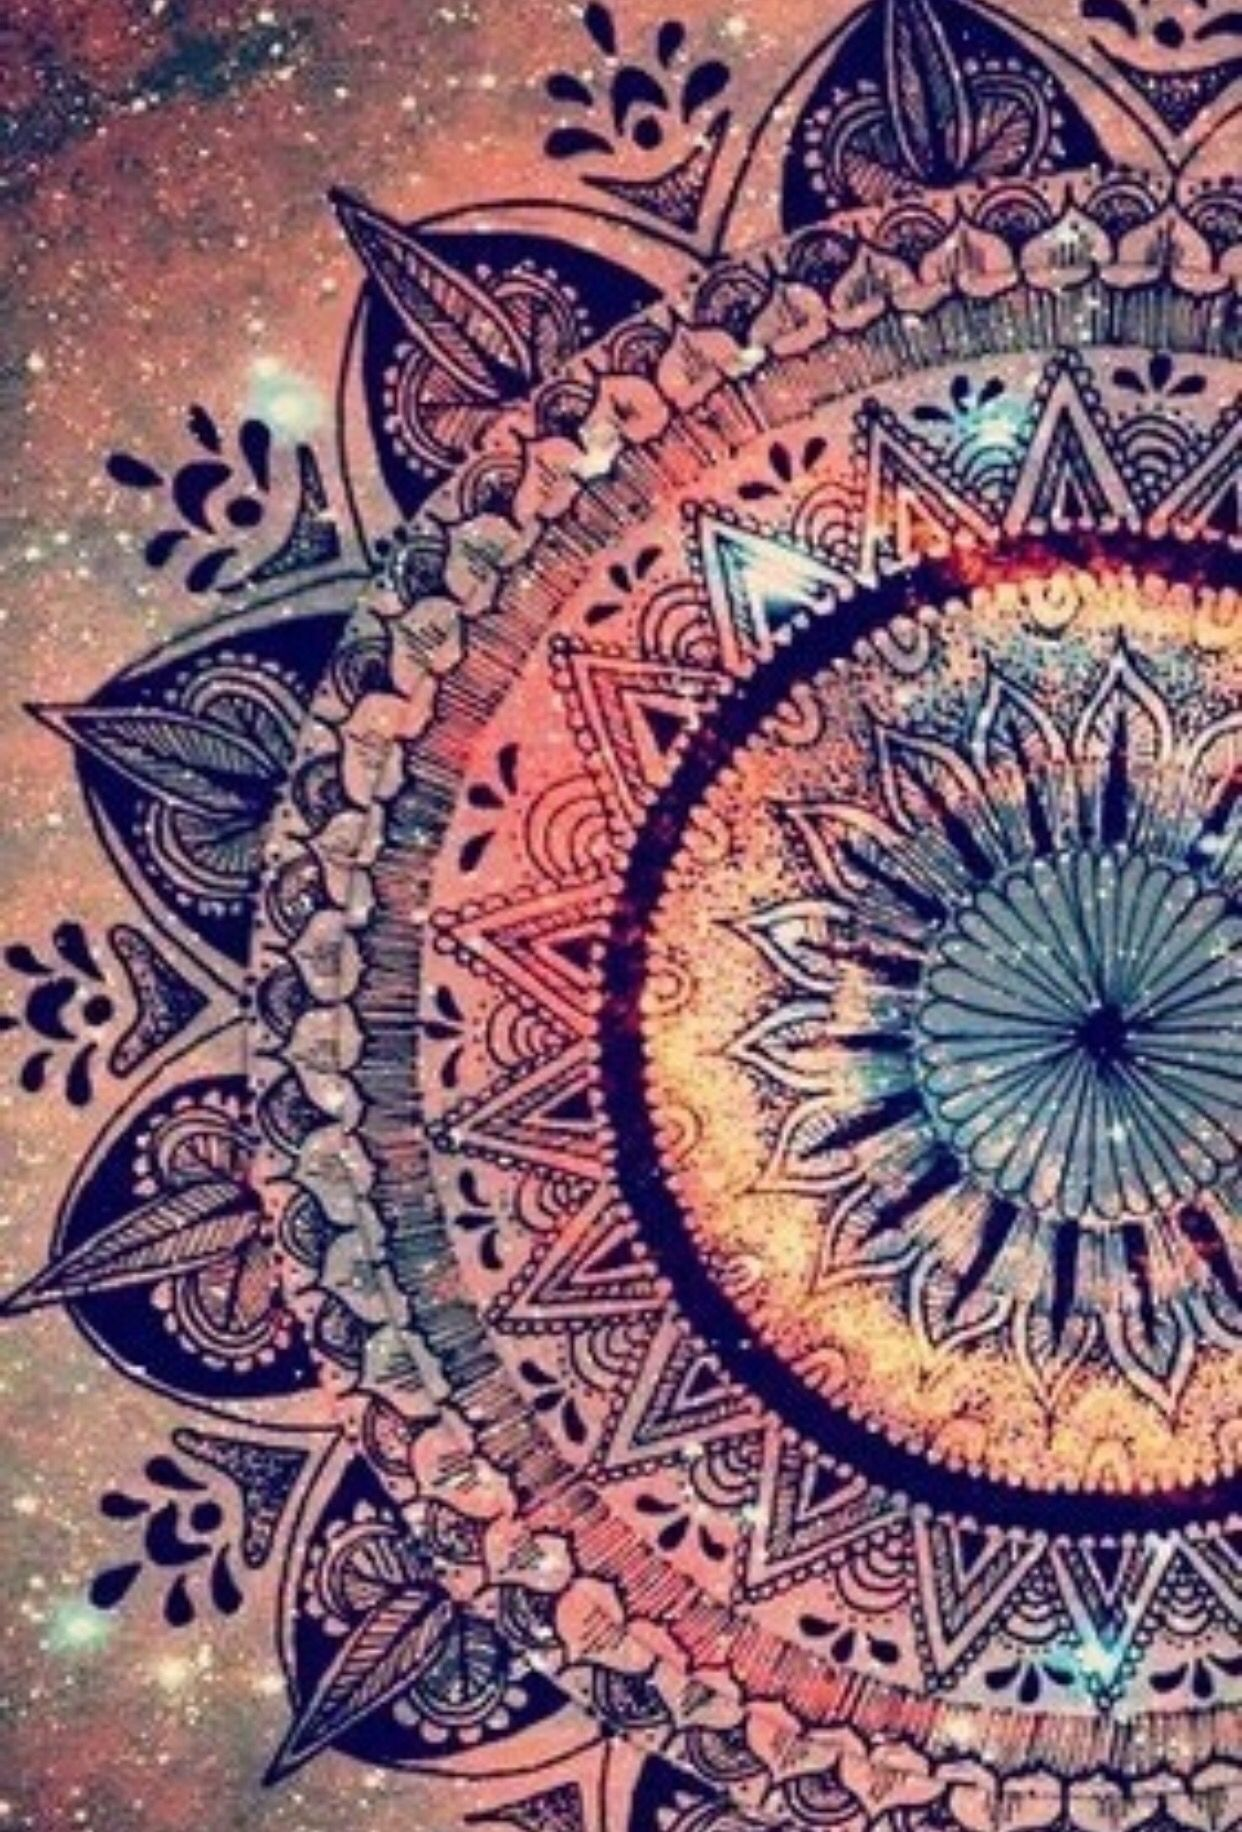 Boho background | Yoga and inner peace | Iphone wallpaper, Art, Wallpaper backgrounds